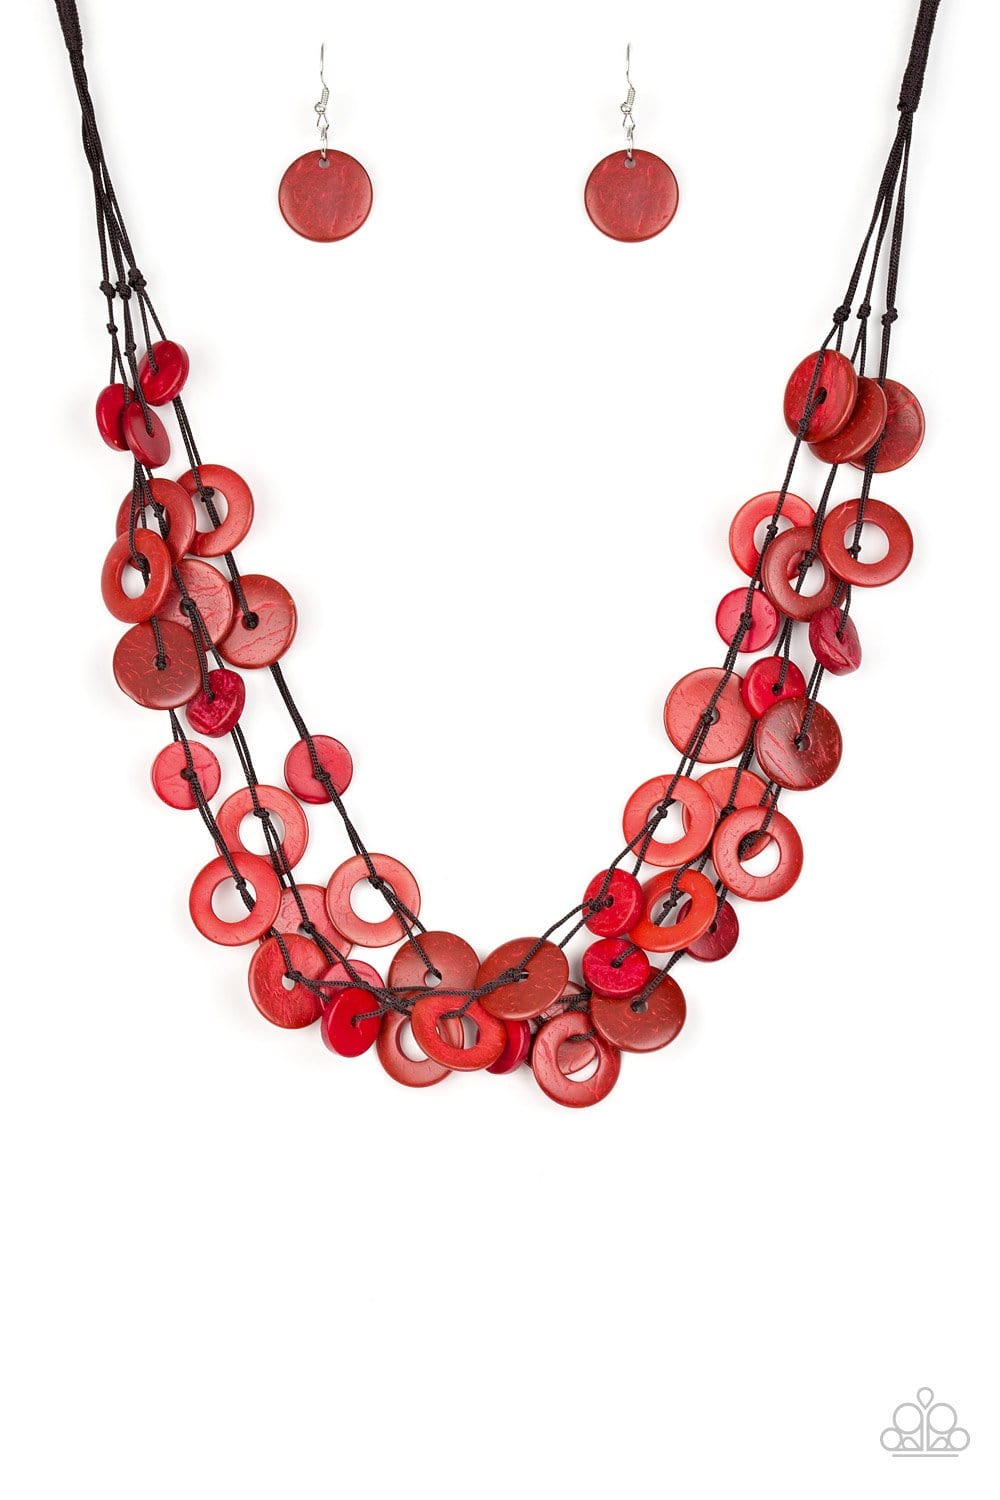 Paparazzi: Wonderfully Walla Walla - Red Wooden Necklace